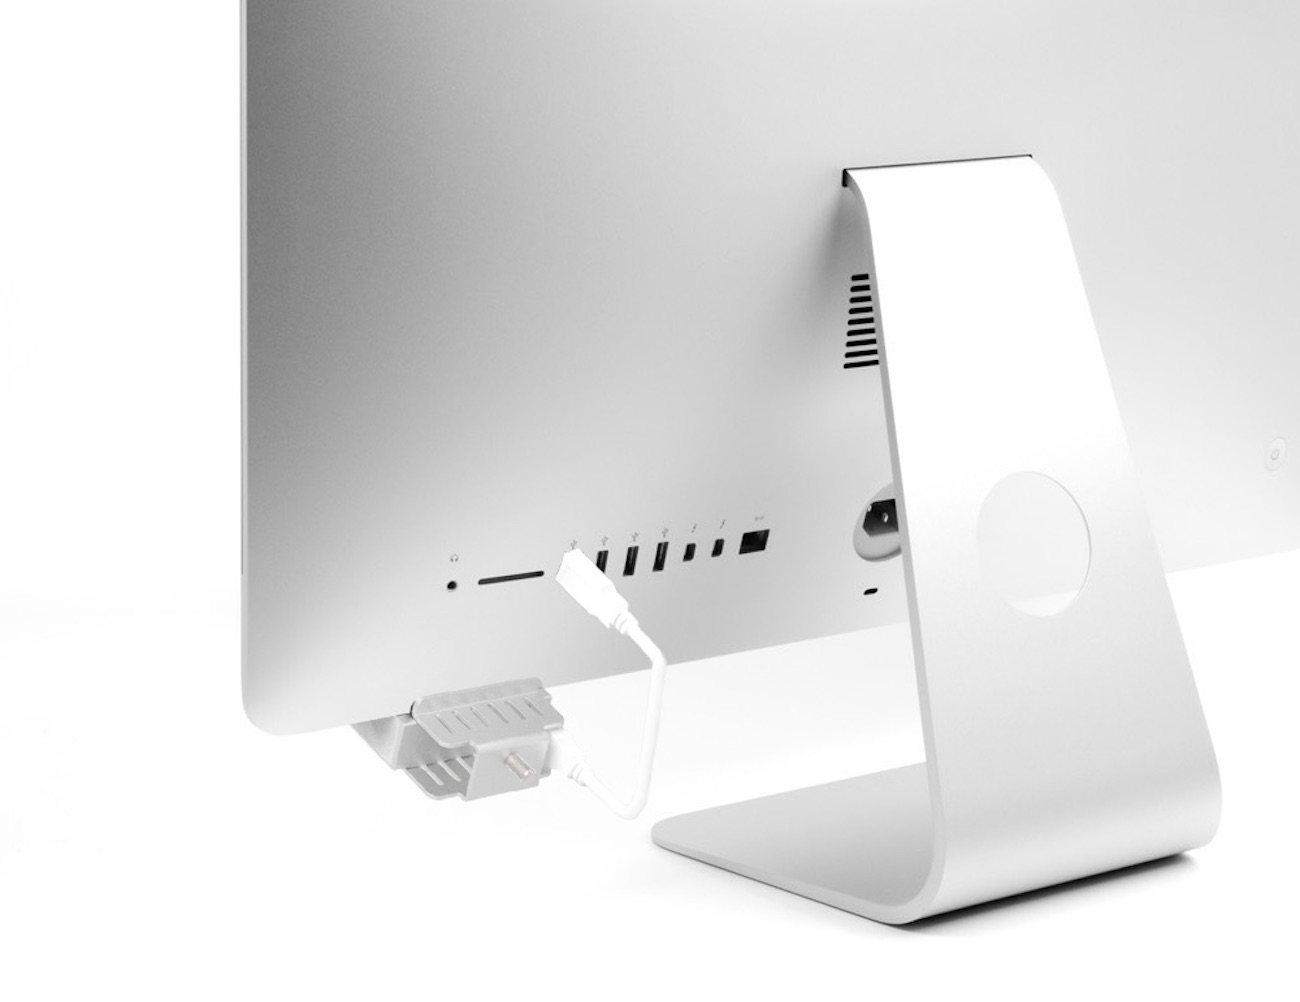 Satechi Aluminum Clamp USB Hub